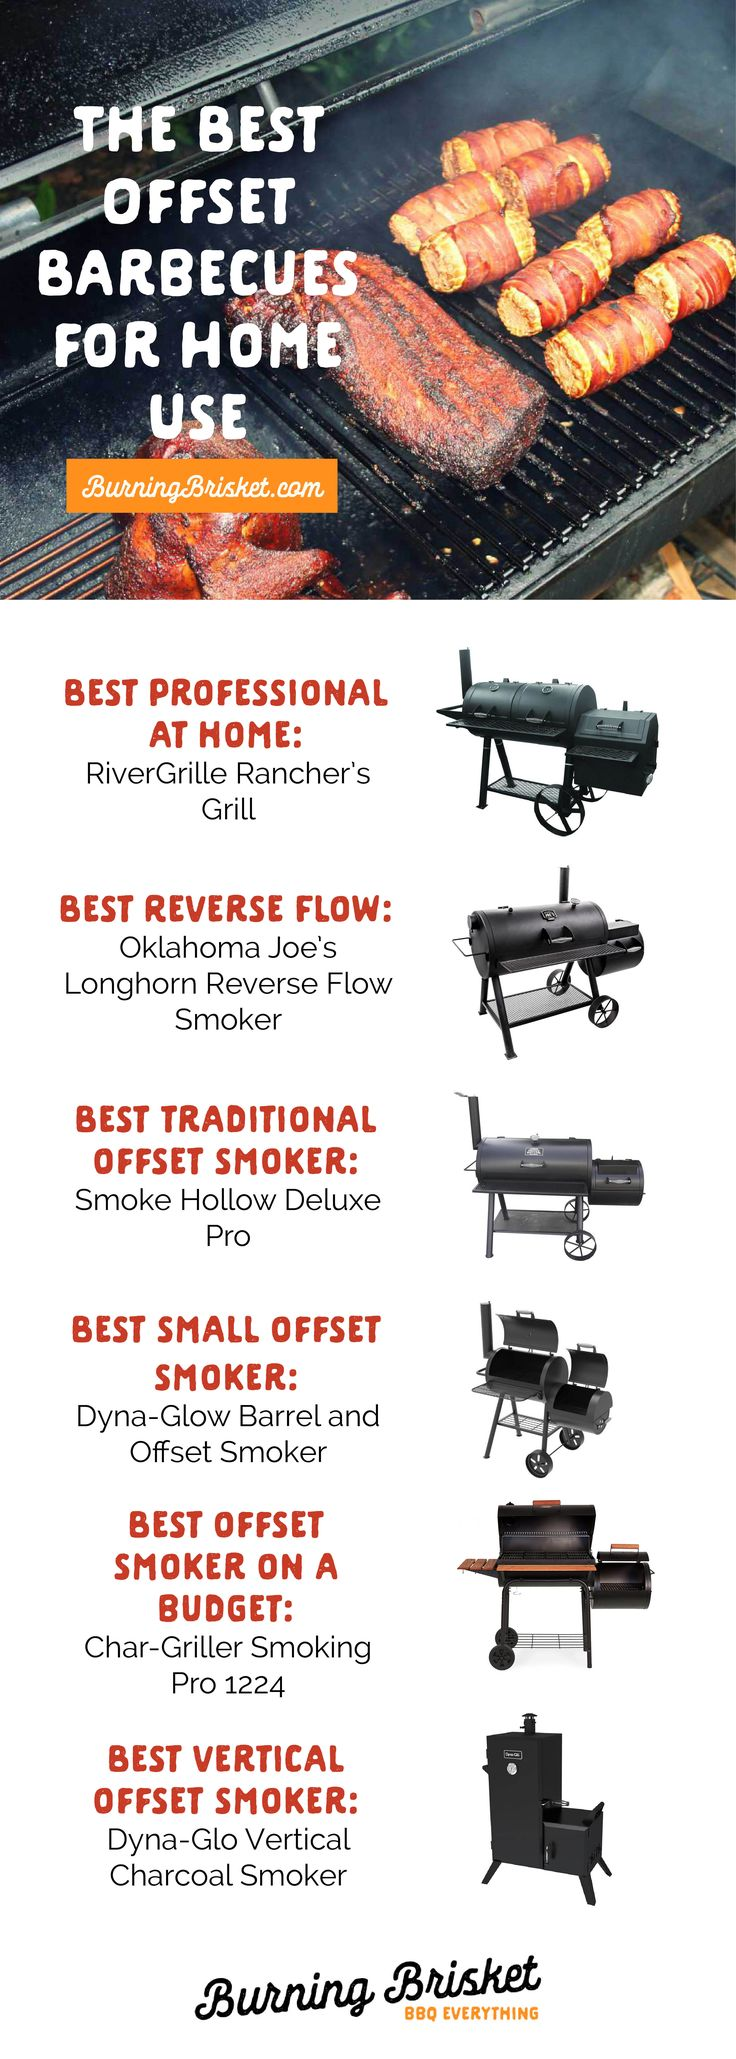 Delicious, fall-apart, low-and-slow meats are easy to create with one of these great offset smokers. Click on the image for the full review | Burning Brisket | Barbecue Everything | best offset smokers, top offset smokers, best smokers, top smokers, how t